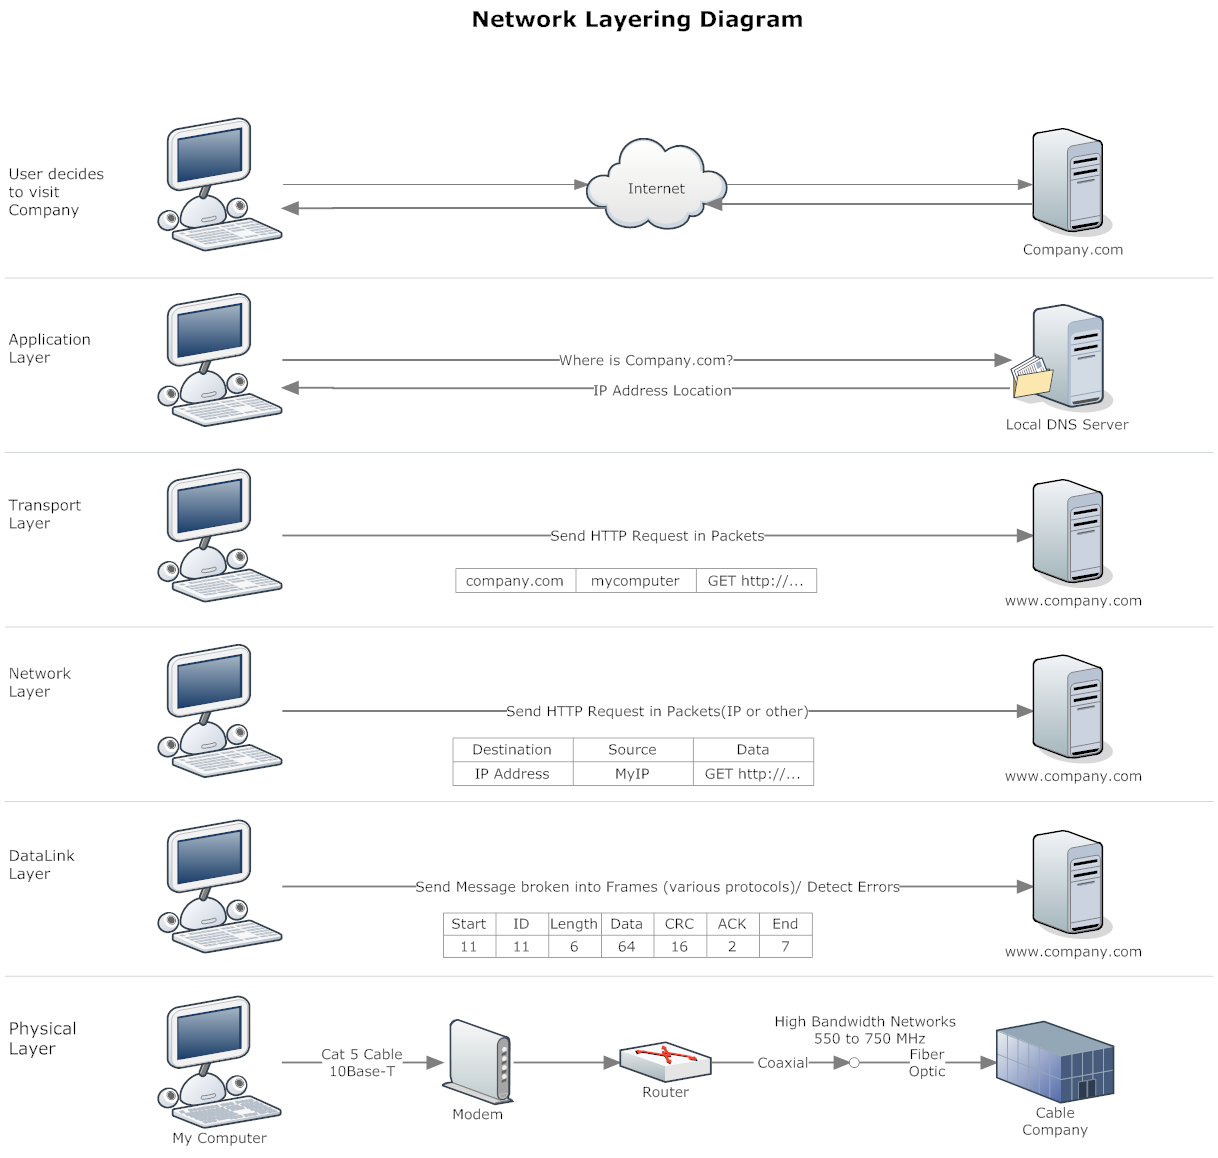 hight resolution of network diagram example network layering diagram computer network software development java layering